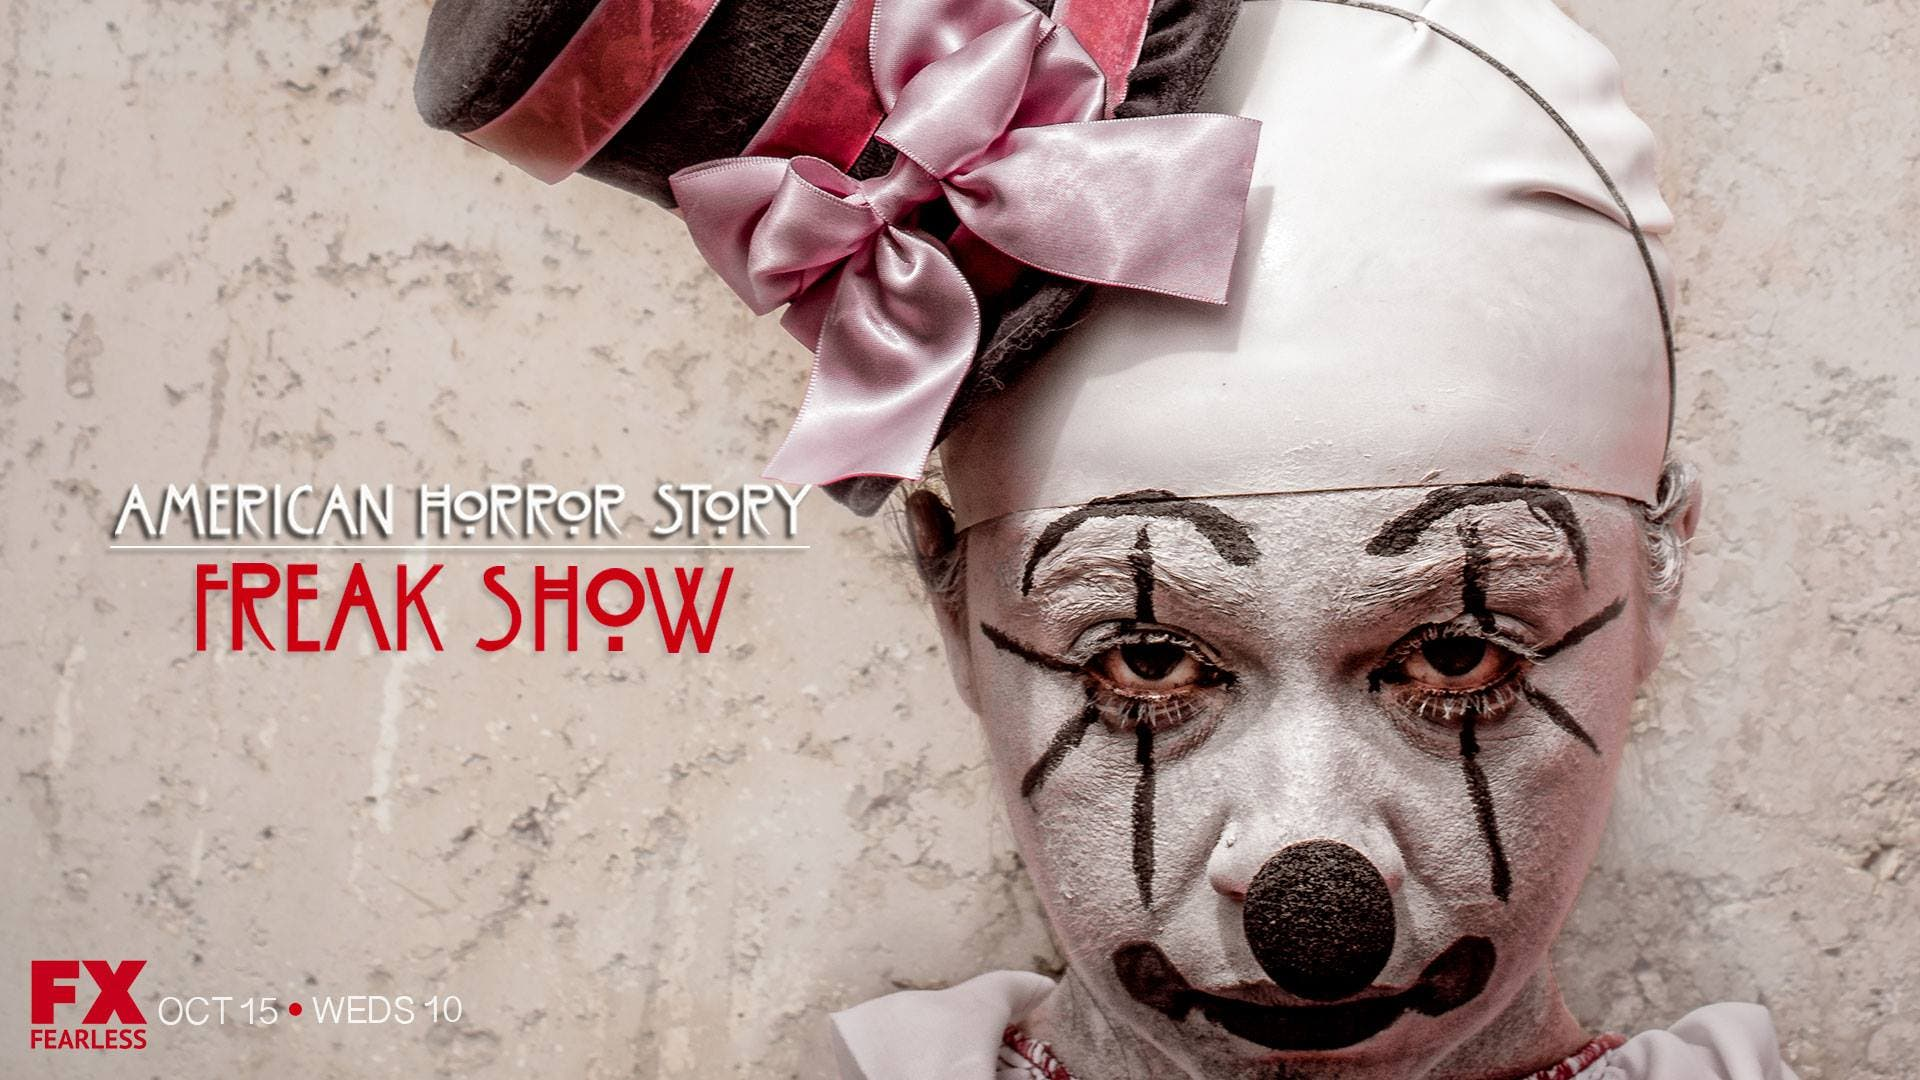 These Creepy Fan-Made Teasers for American Horror Story: Freakshow are Giving FX a Run for its Money - The Phoblographer